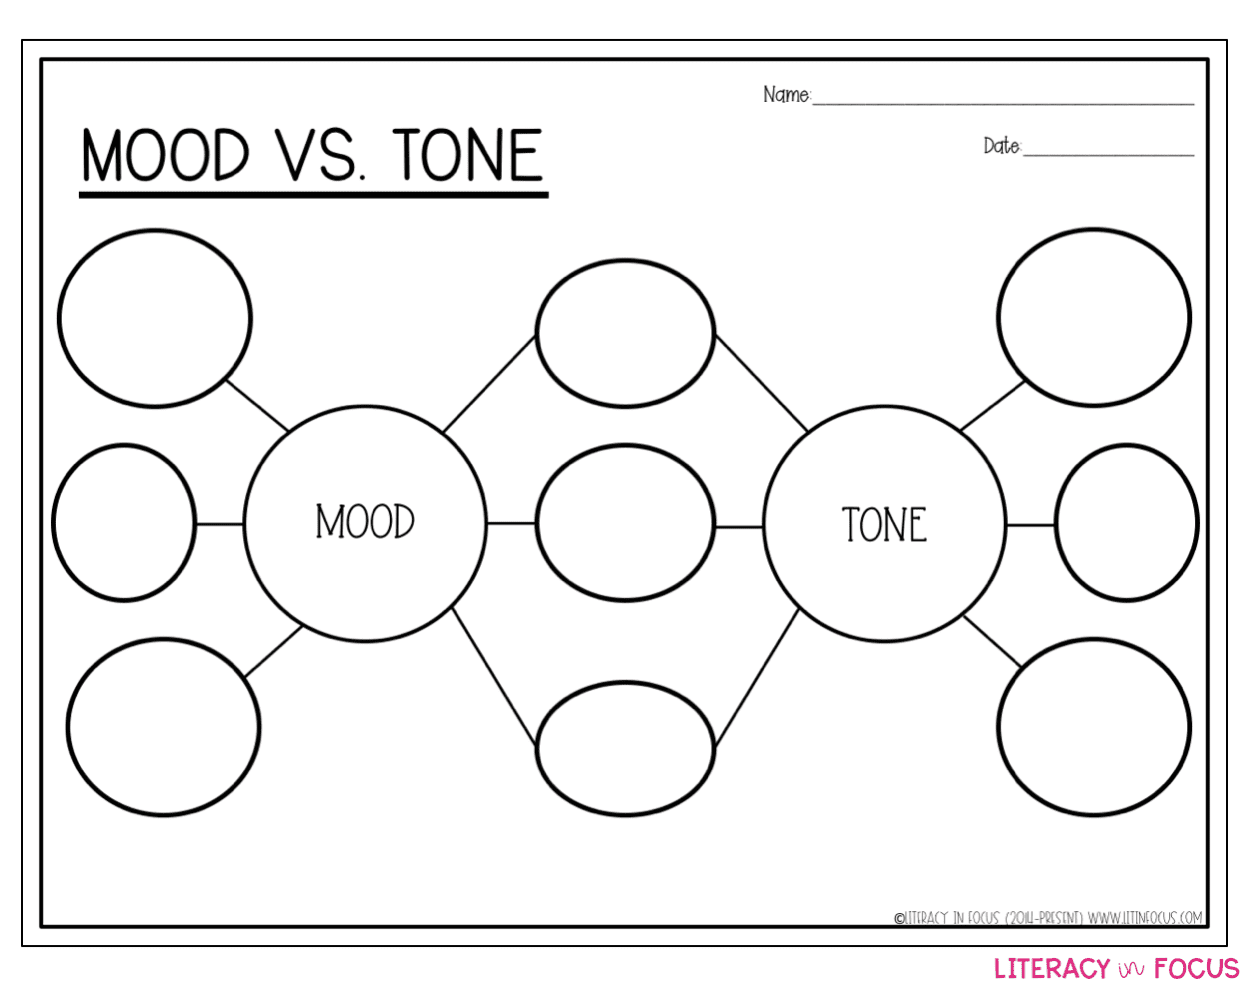 Mood vs. Tone Map